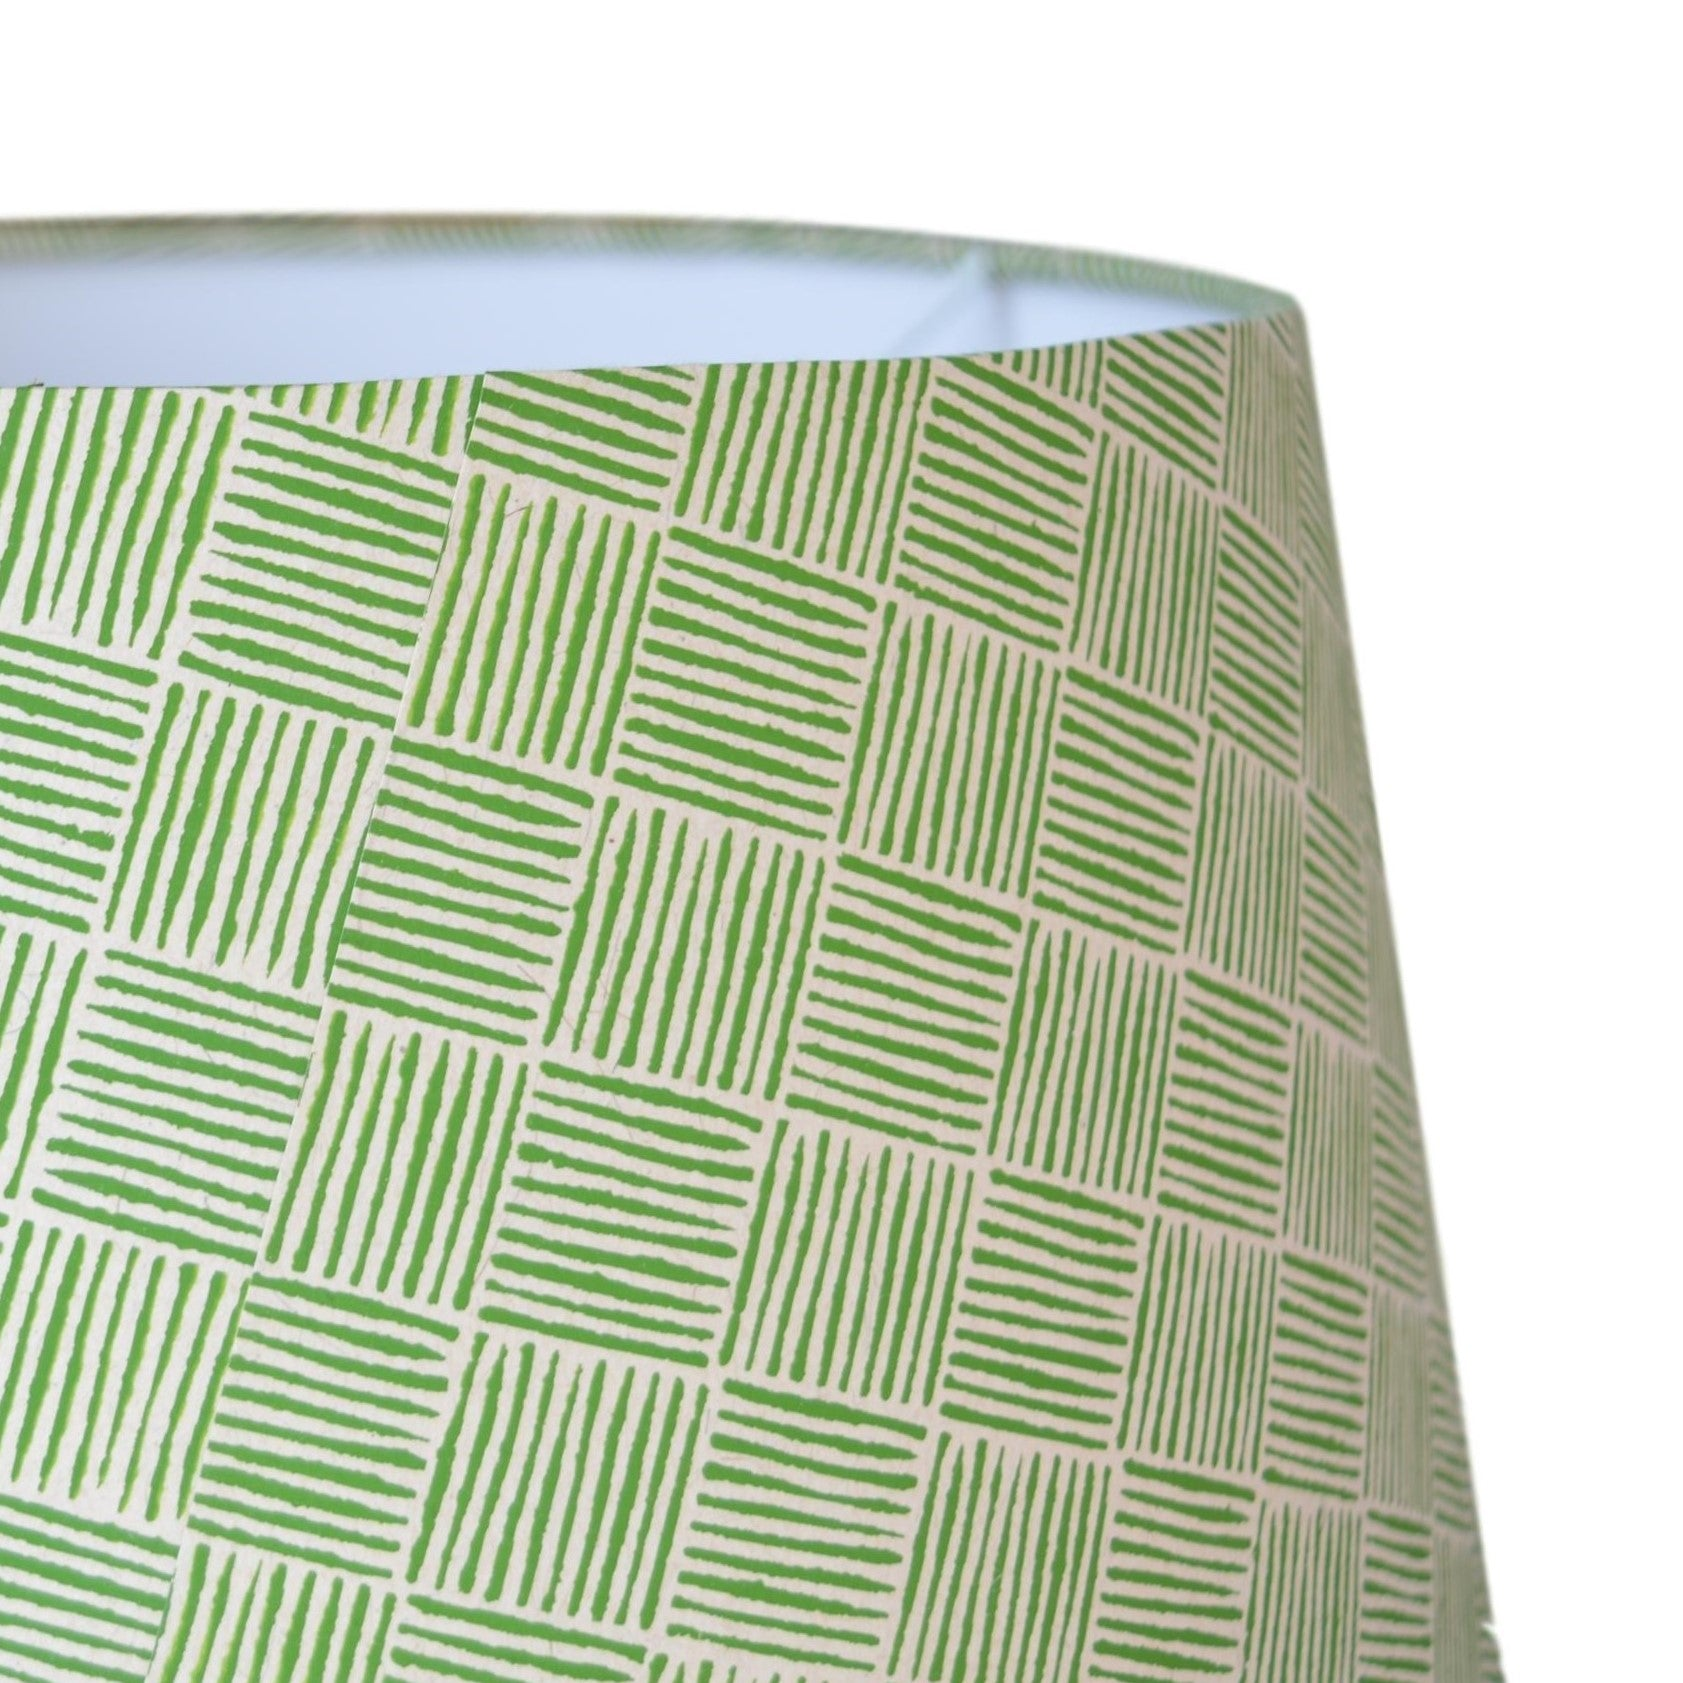 Munro and Kerr green hand printed herringbone paper for a tapered empire lampshade